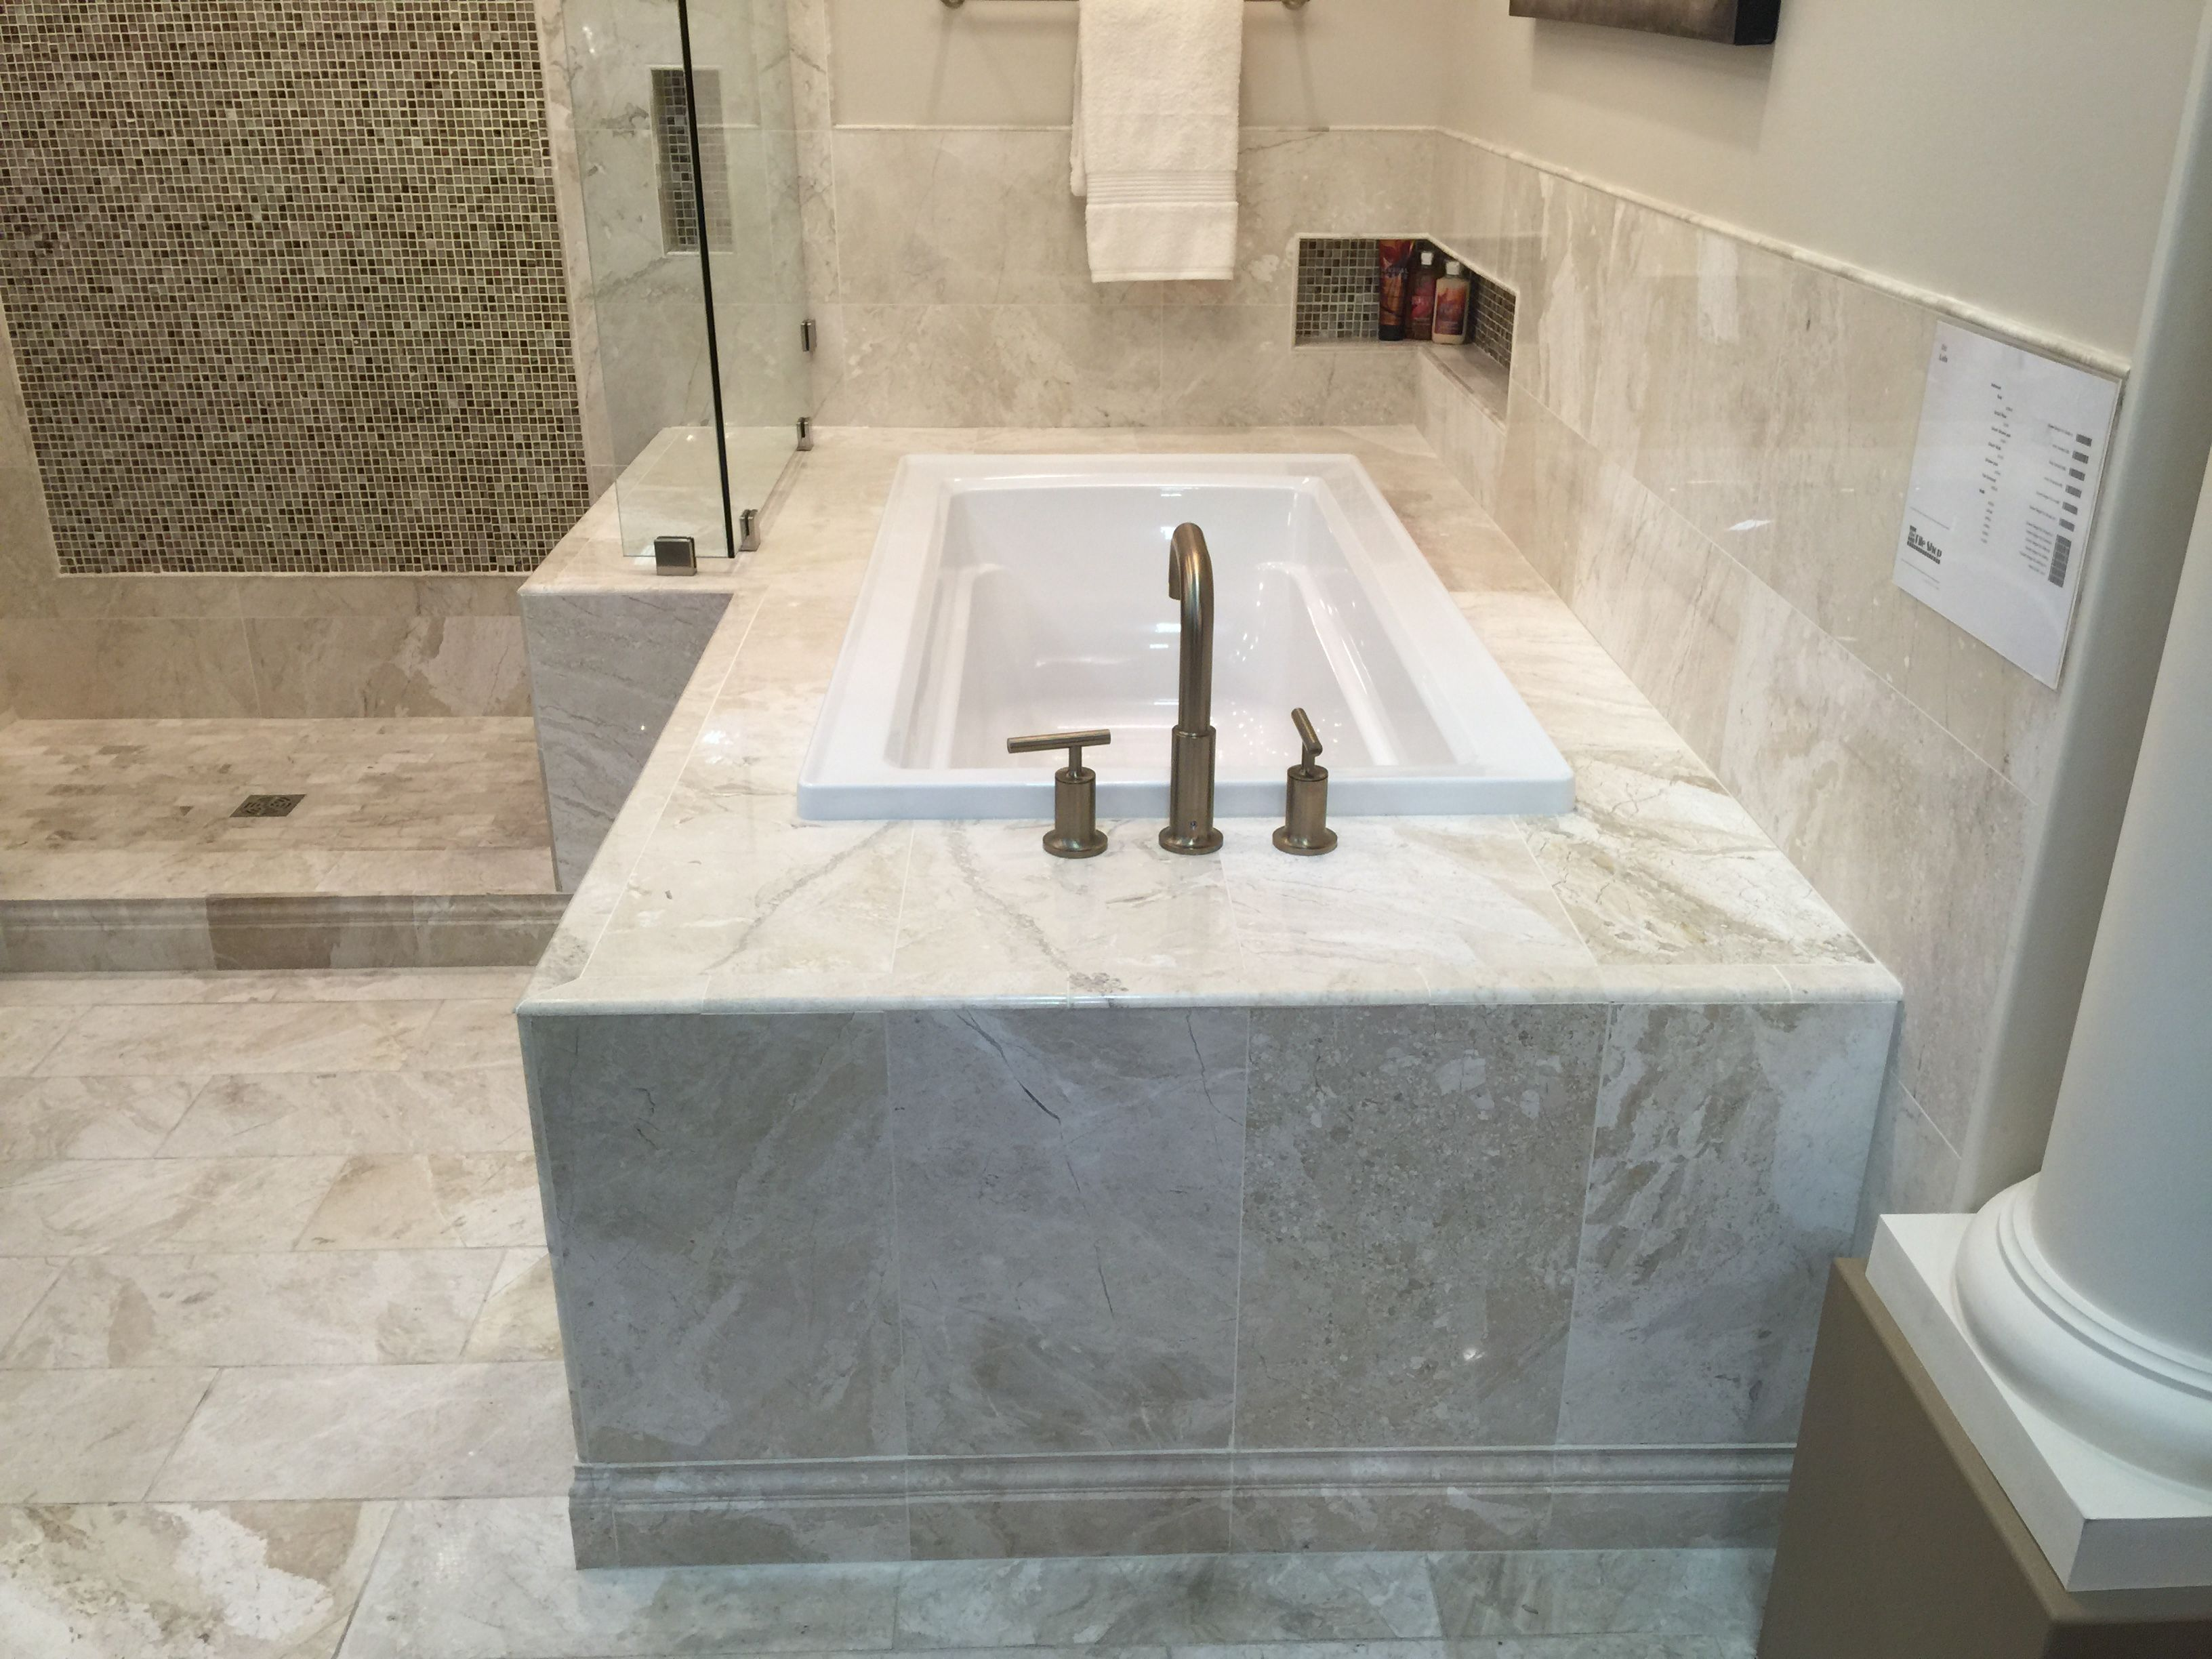 Drop in tub with tile surround. | Bathrooms Remodel | Pinterest ...